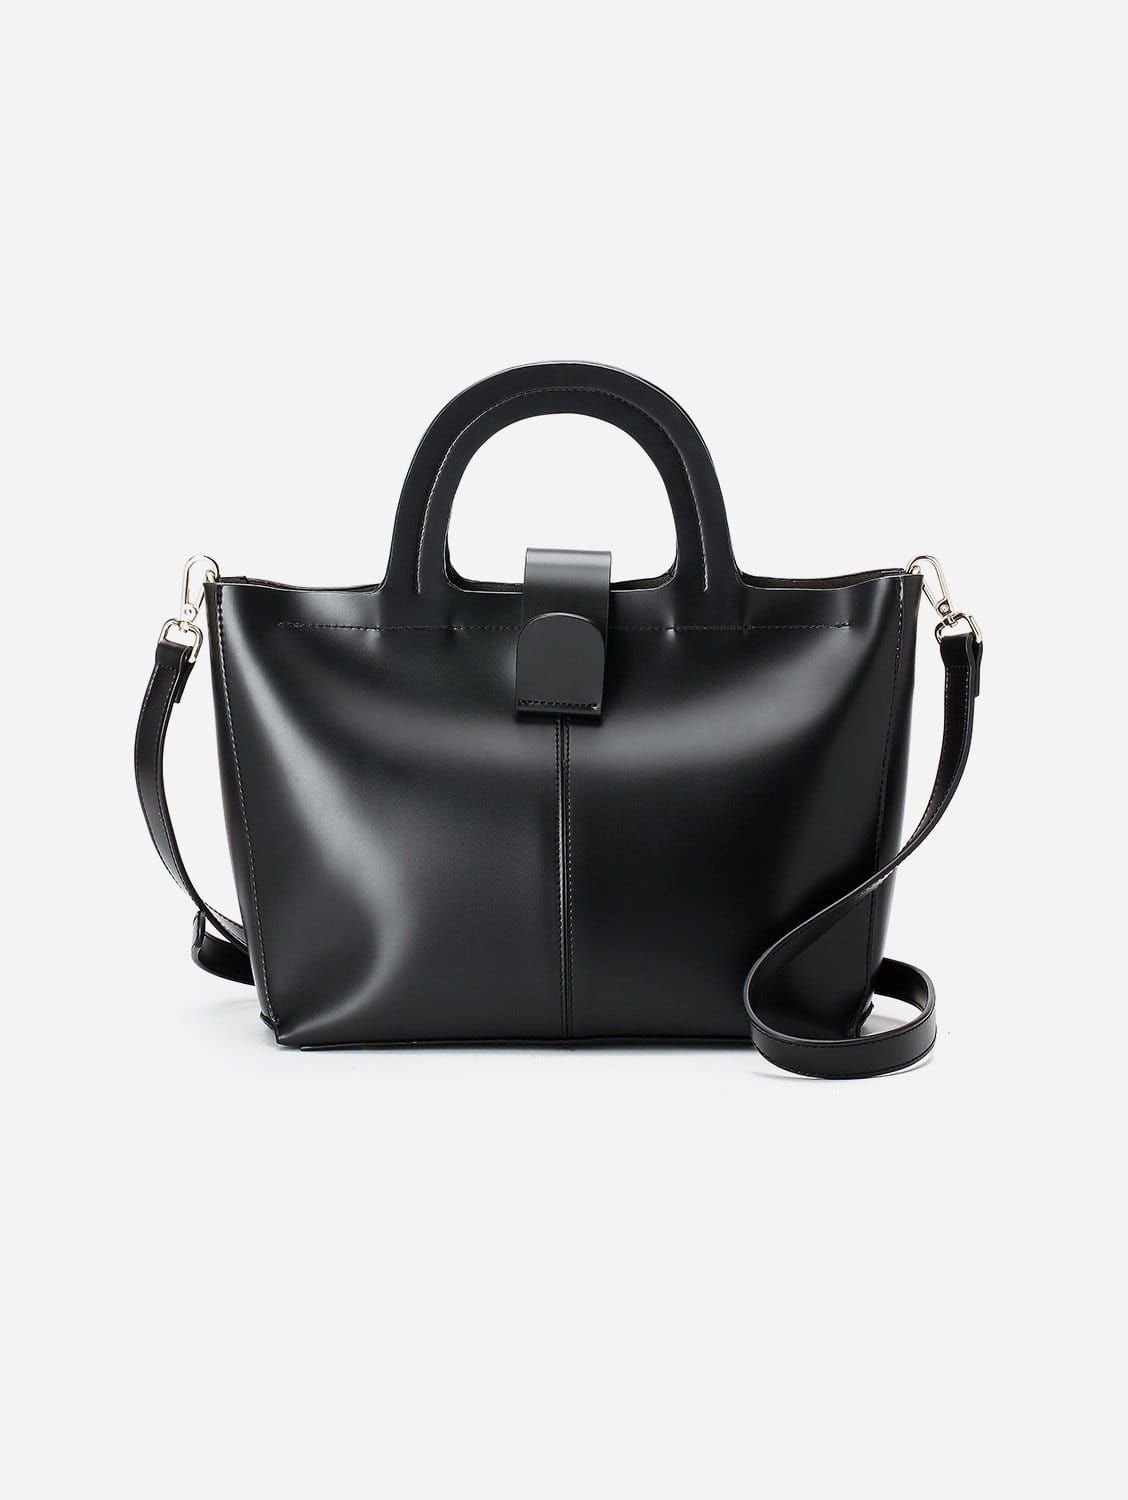 Expressions Nyc Sustainable Vegan Leather Bags On Renoon In 2020 Vegan Leather Bag Leather Satchel Satchel